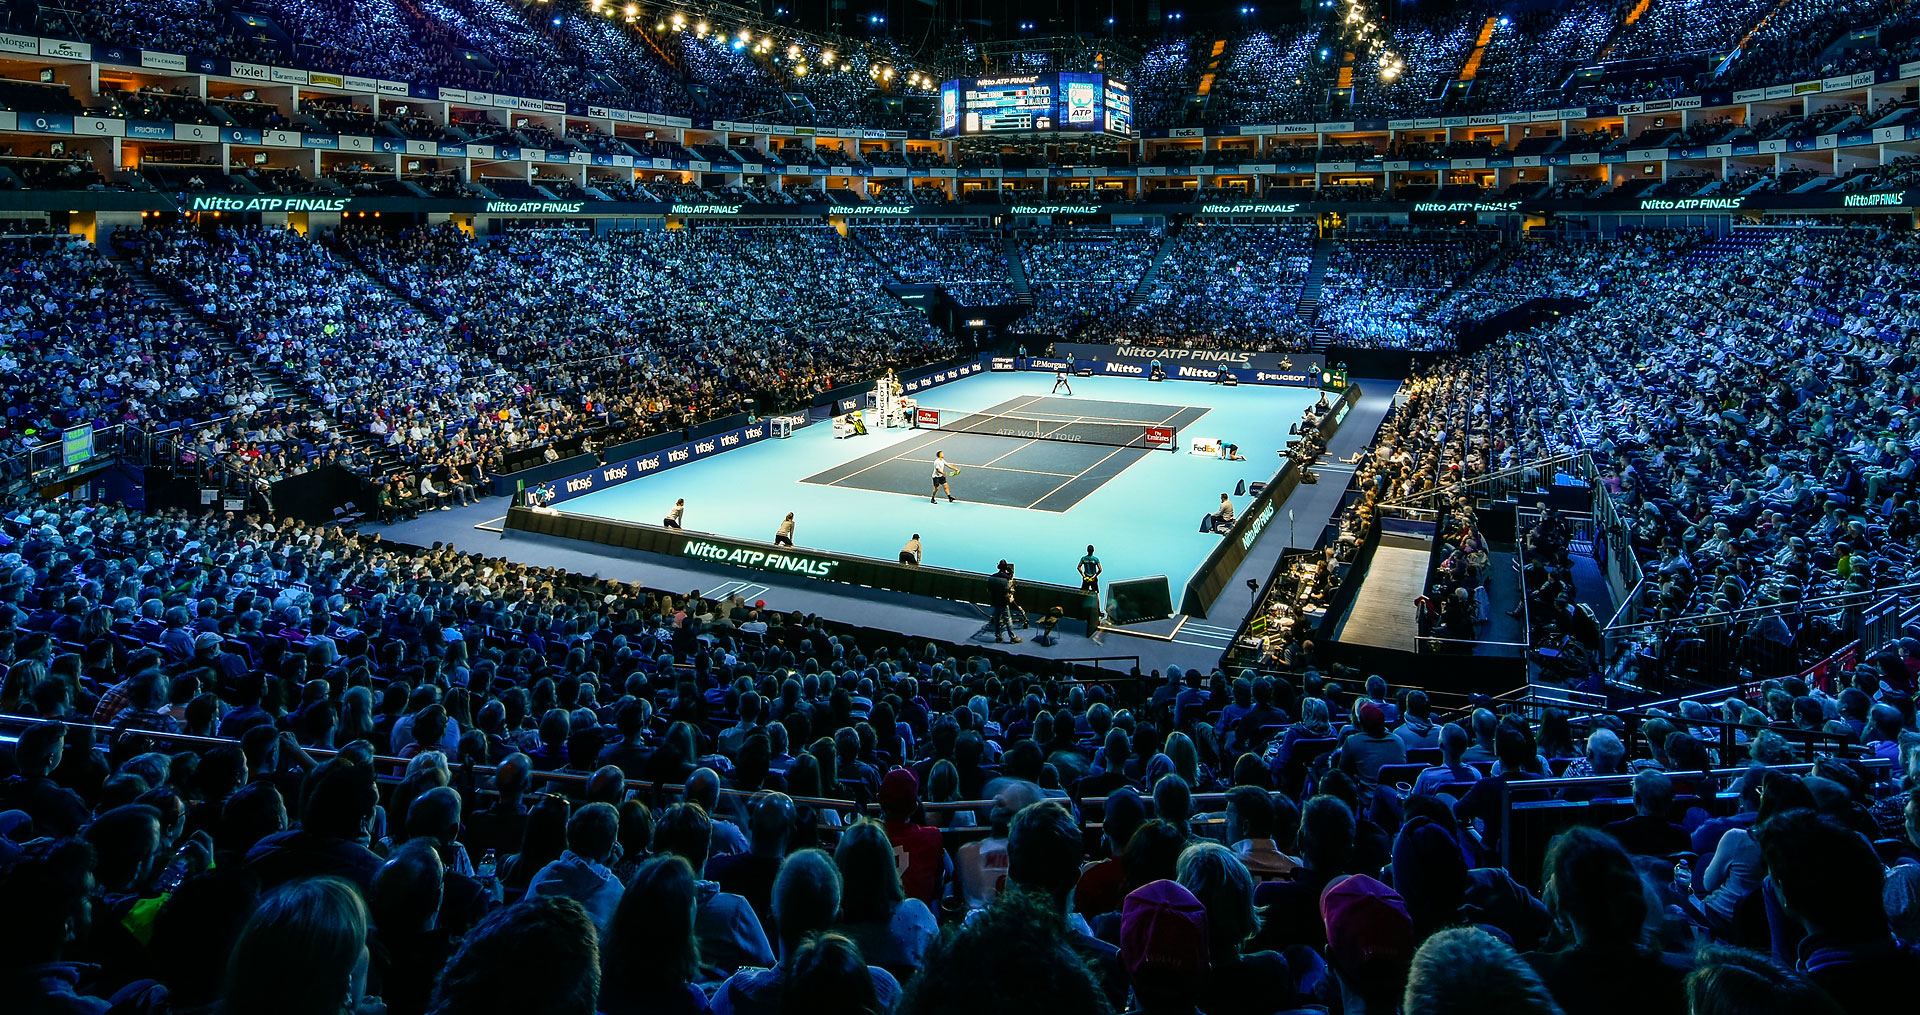 Image result for nitto atp finals